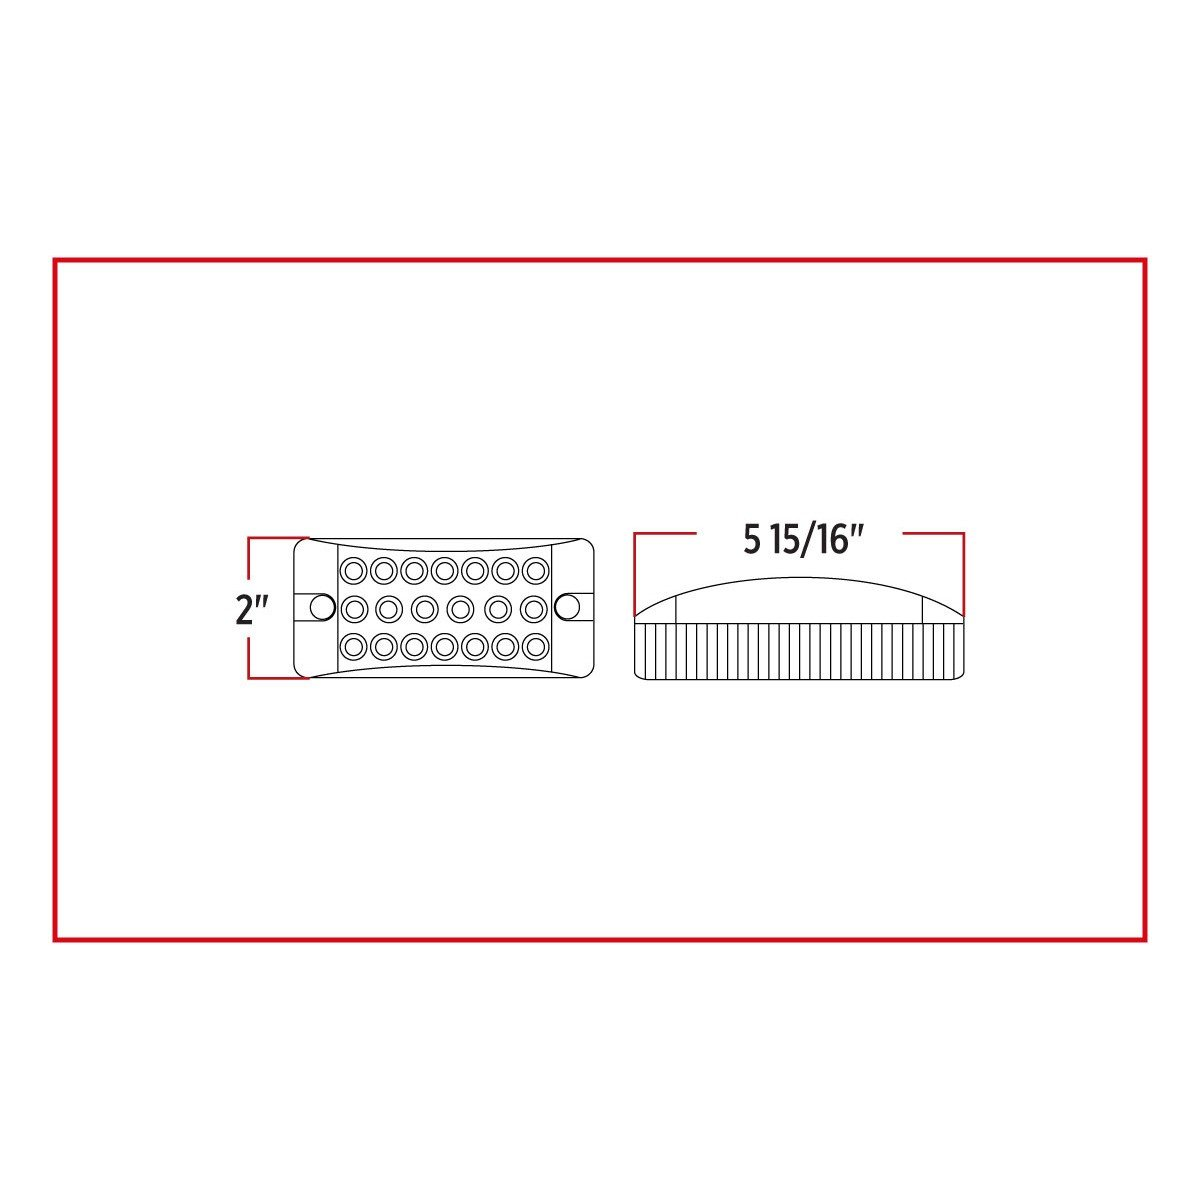 Trux Accessories LED Trailer Light Rectangular 20 Diodes 2in x 6in Model Number TLED-2X6R Red